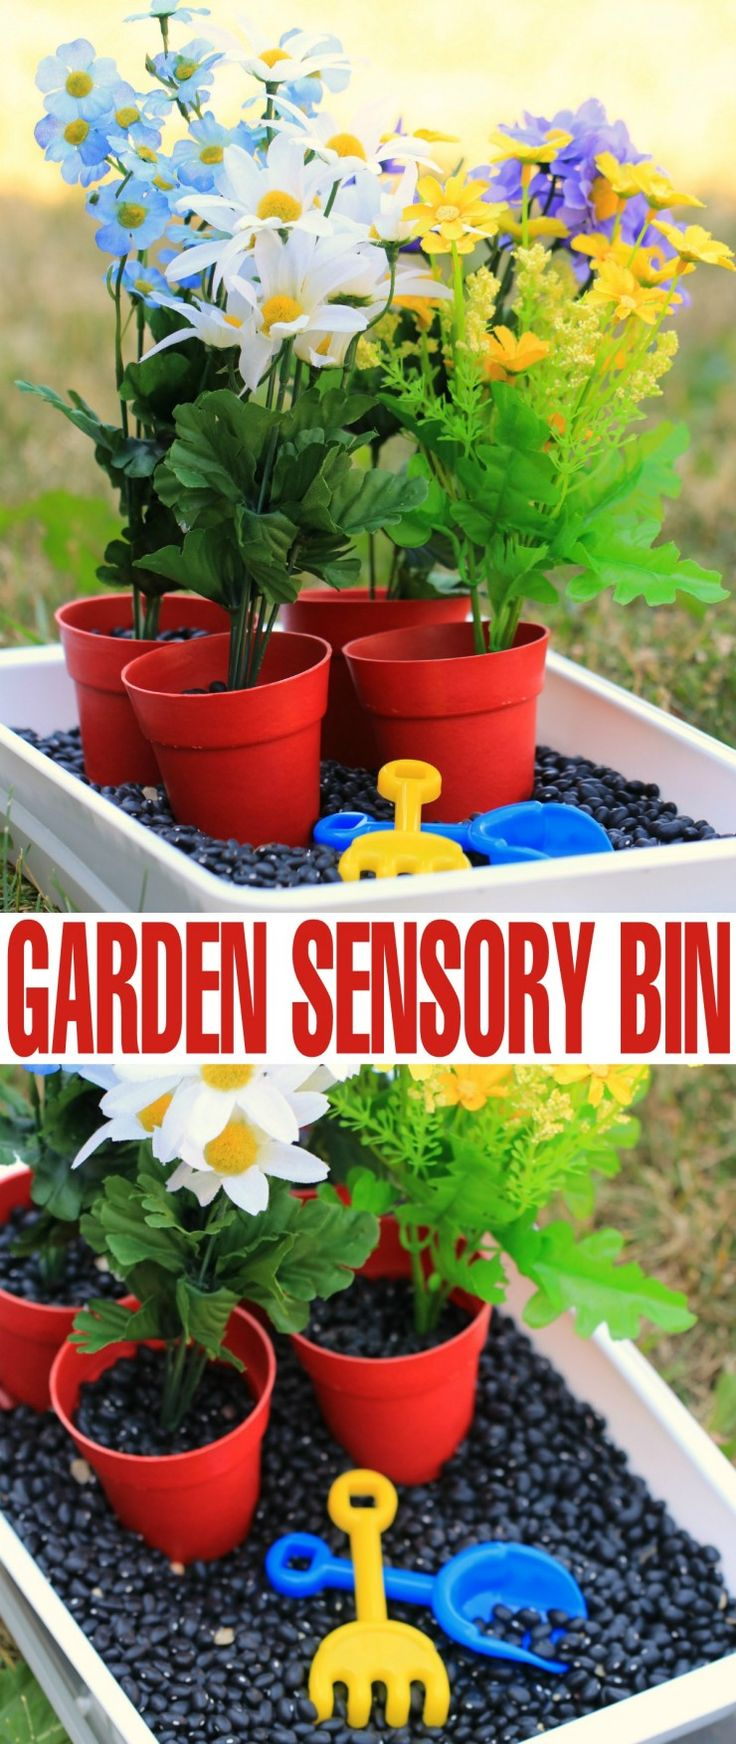 This Gardening Inspired Sensory Bin is the perfect kids activity for engaging busy little gardeners this summer. Let your kids plant a garden with a little imaginative play.                             Our Finding Dory sensory bin was such a hit with the girls that I decided to build them another surprise.     I found …